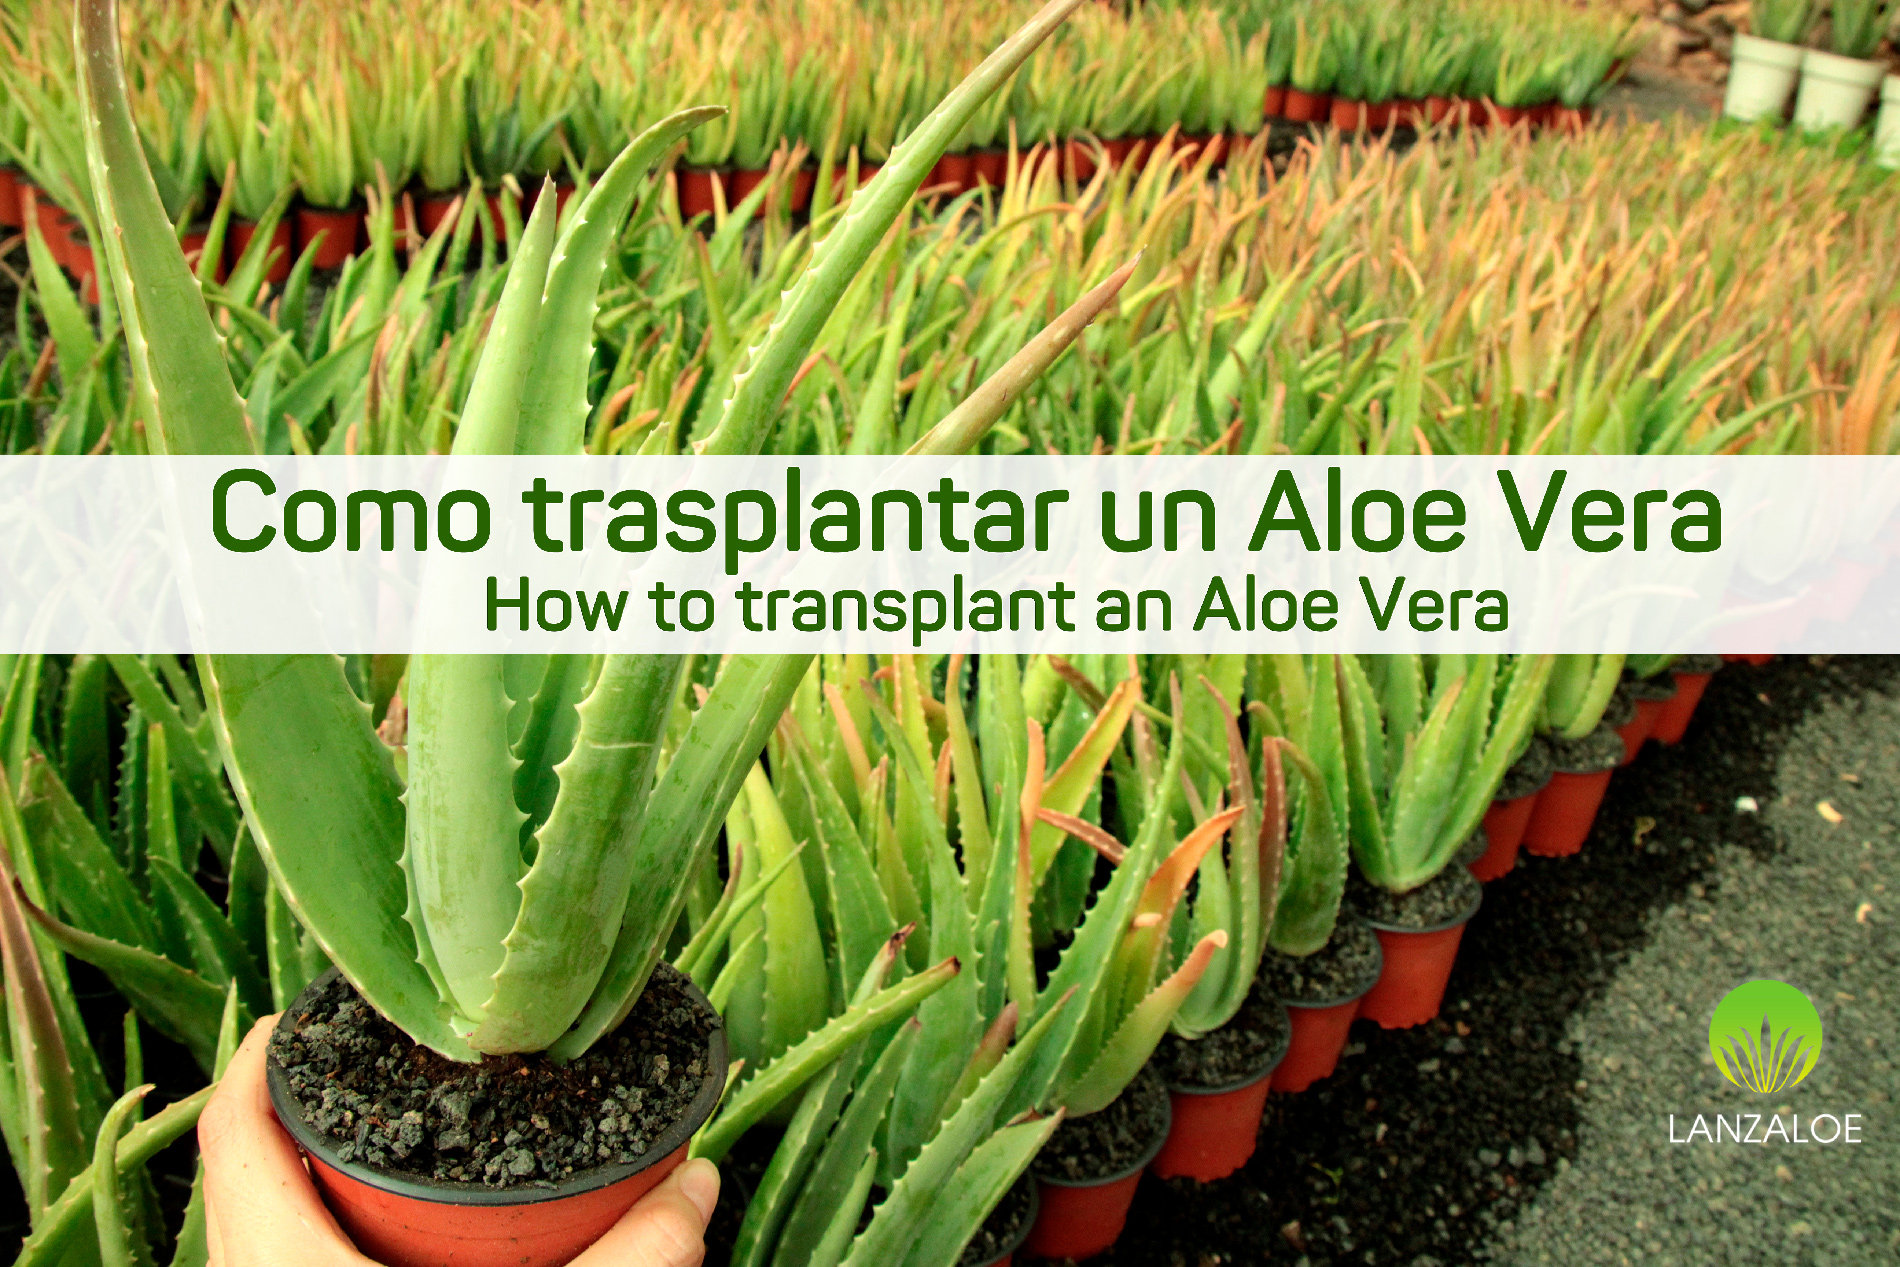 How to transplant an Aloe vera